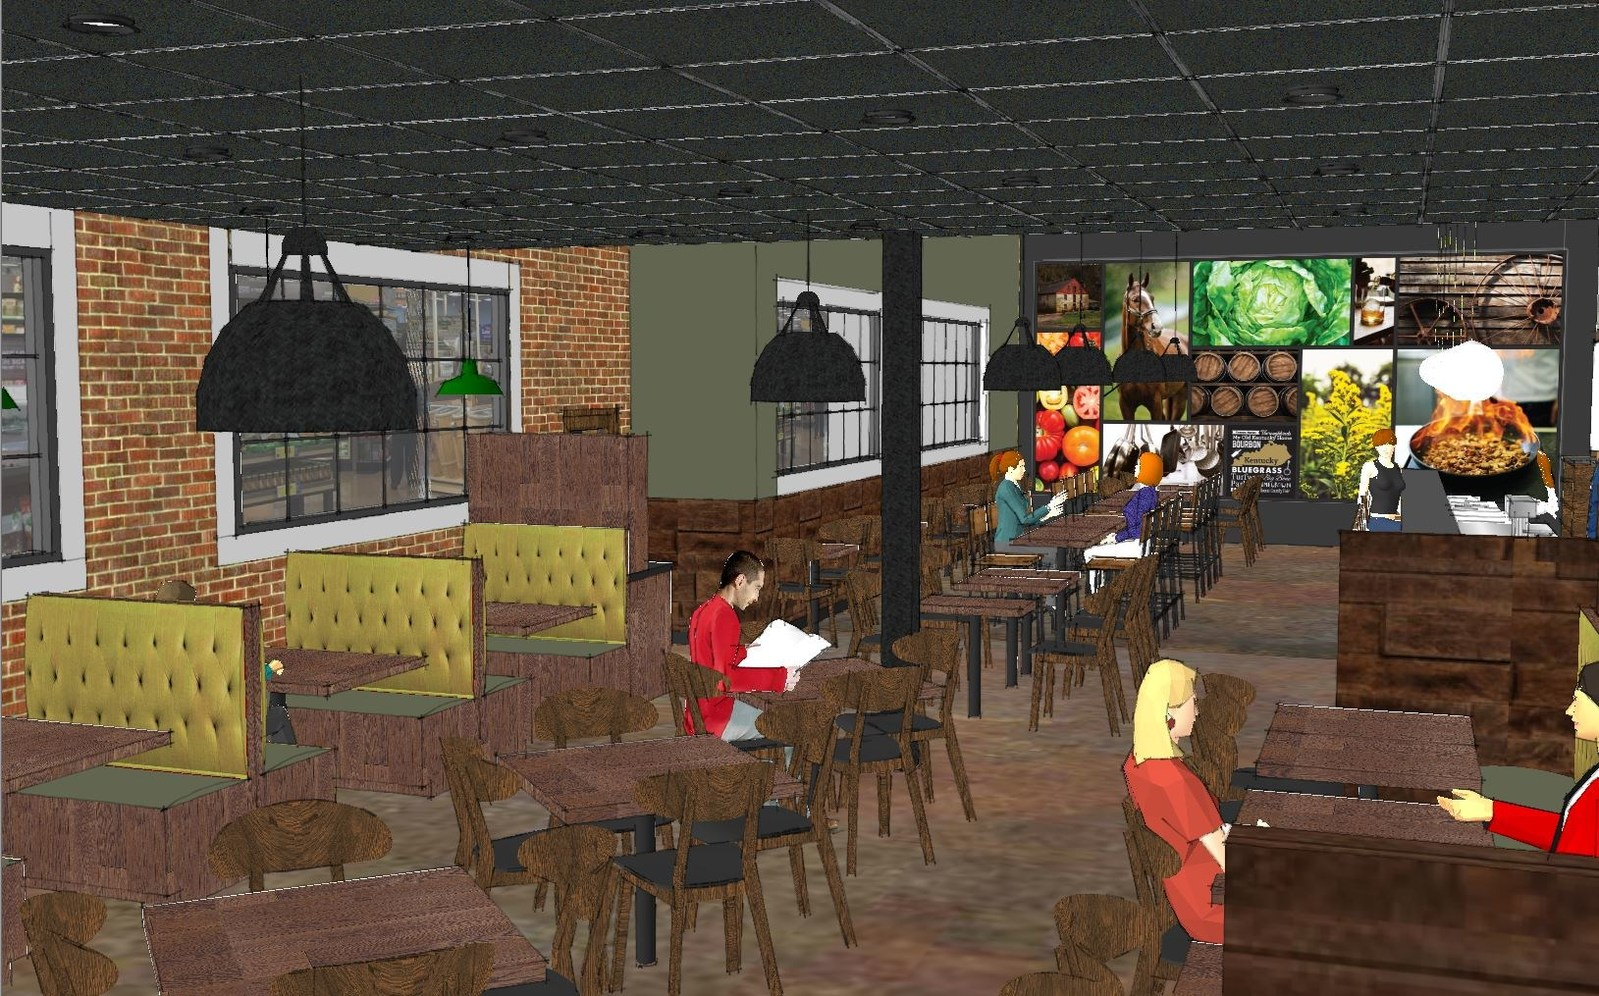 Restaurant Kitchen Pictures kroger to open its first standalone restaurant | convenience store